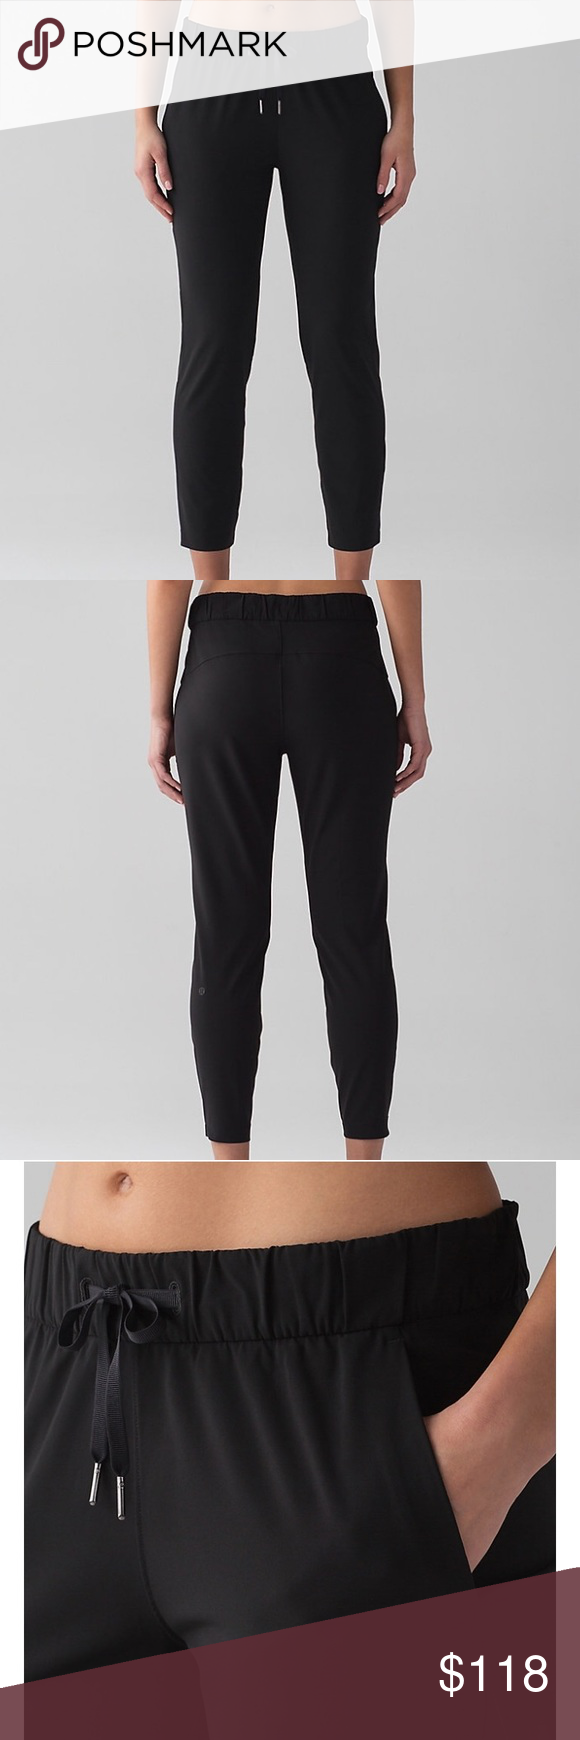 ⚡️Lululemon On The Fly Pant Woven NWT! Lululemon On The Fly Pant Woven. With 4 way stretch and travel friendly fabric, these 7/8 pants help you take adventures in strides! lululemon athletica Pants